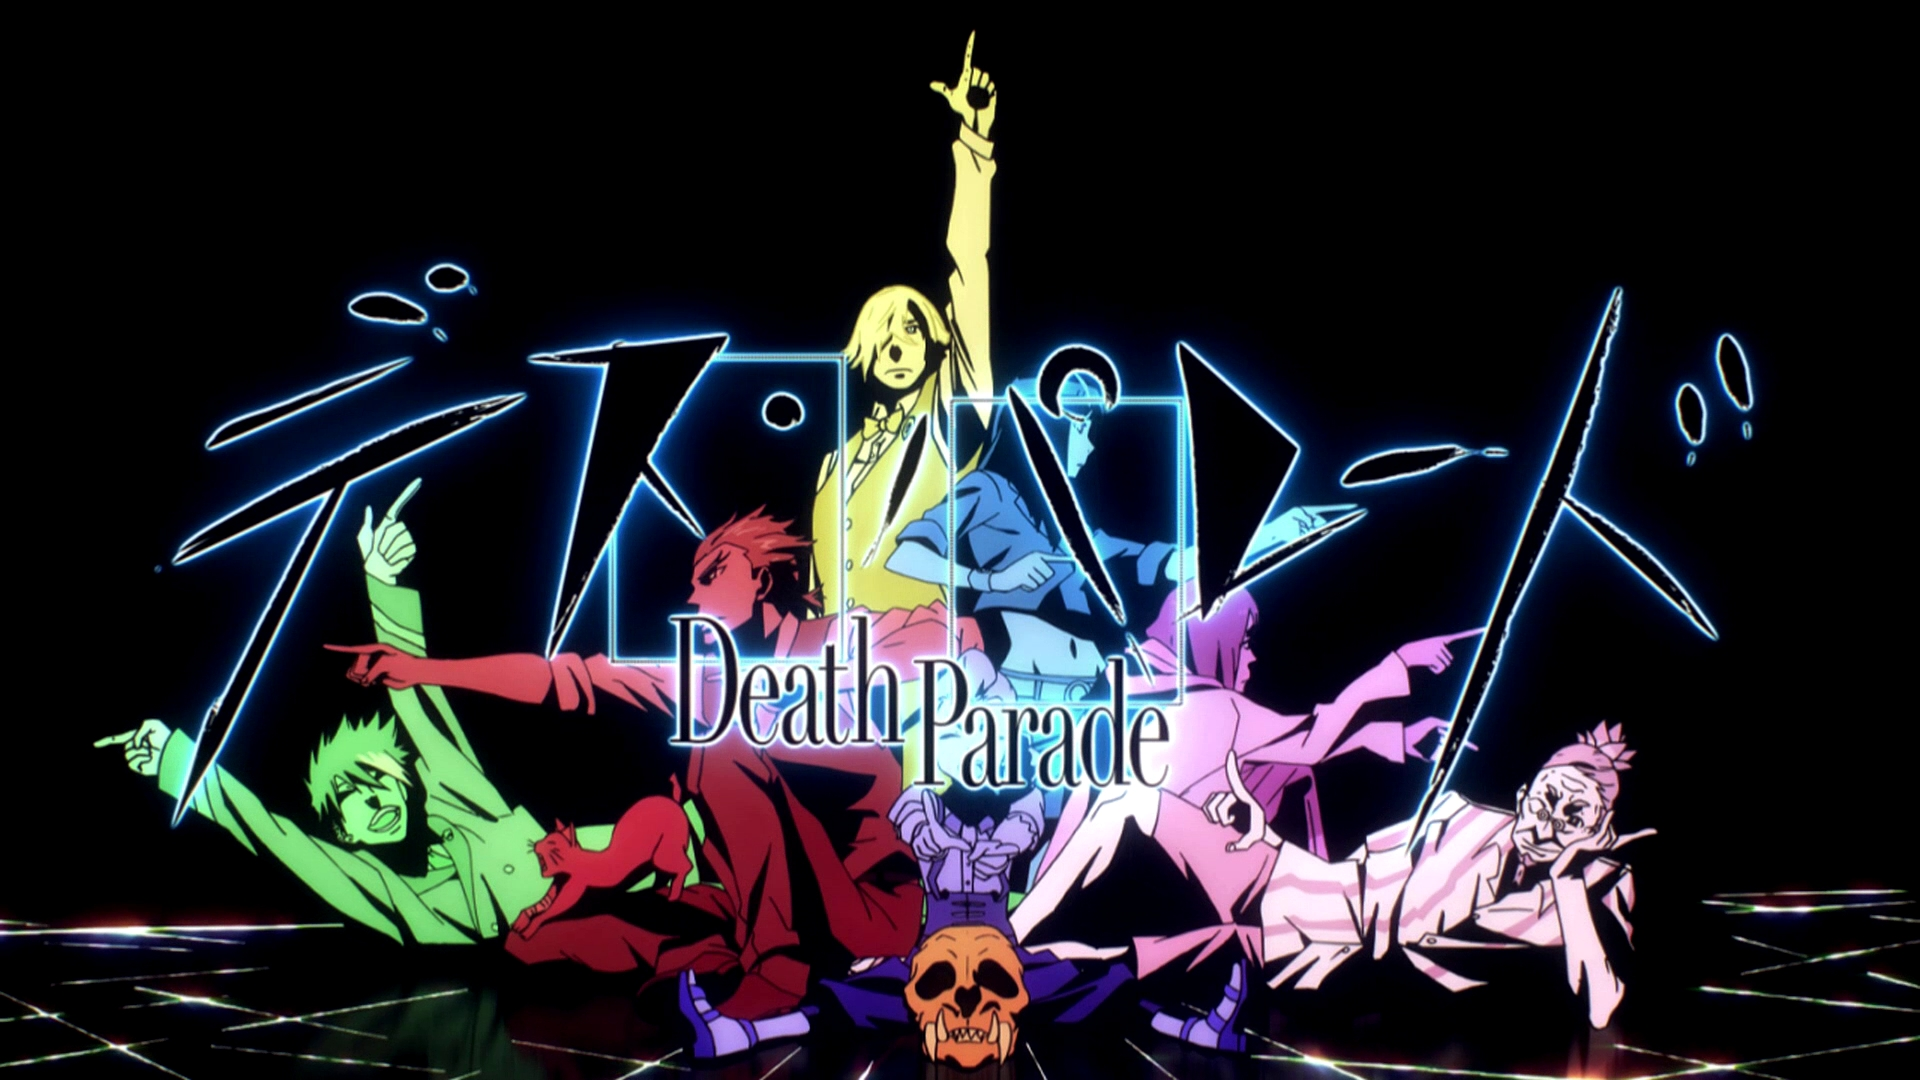 26 death parade hd wallpapers | background images - wallpaper abyss